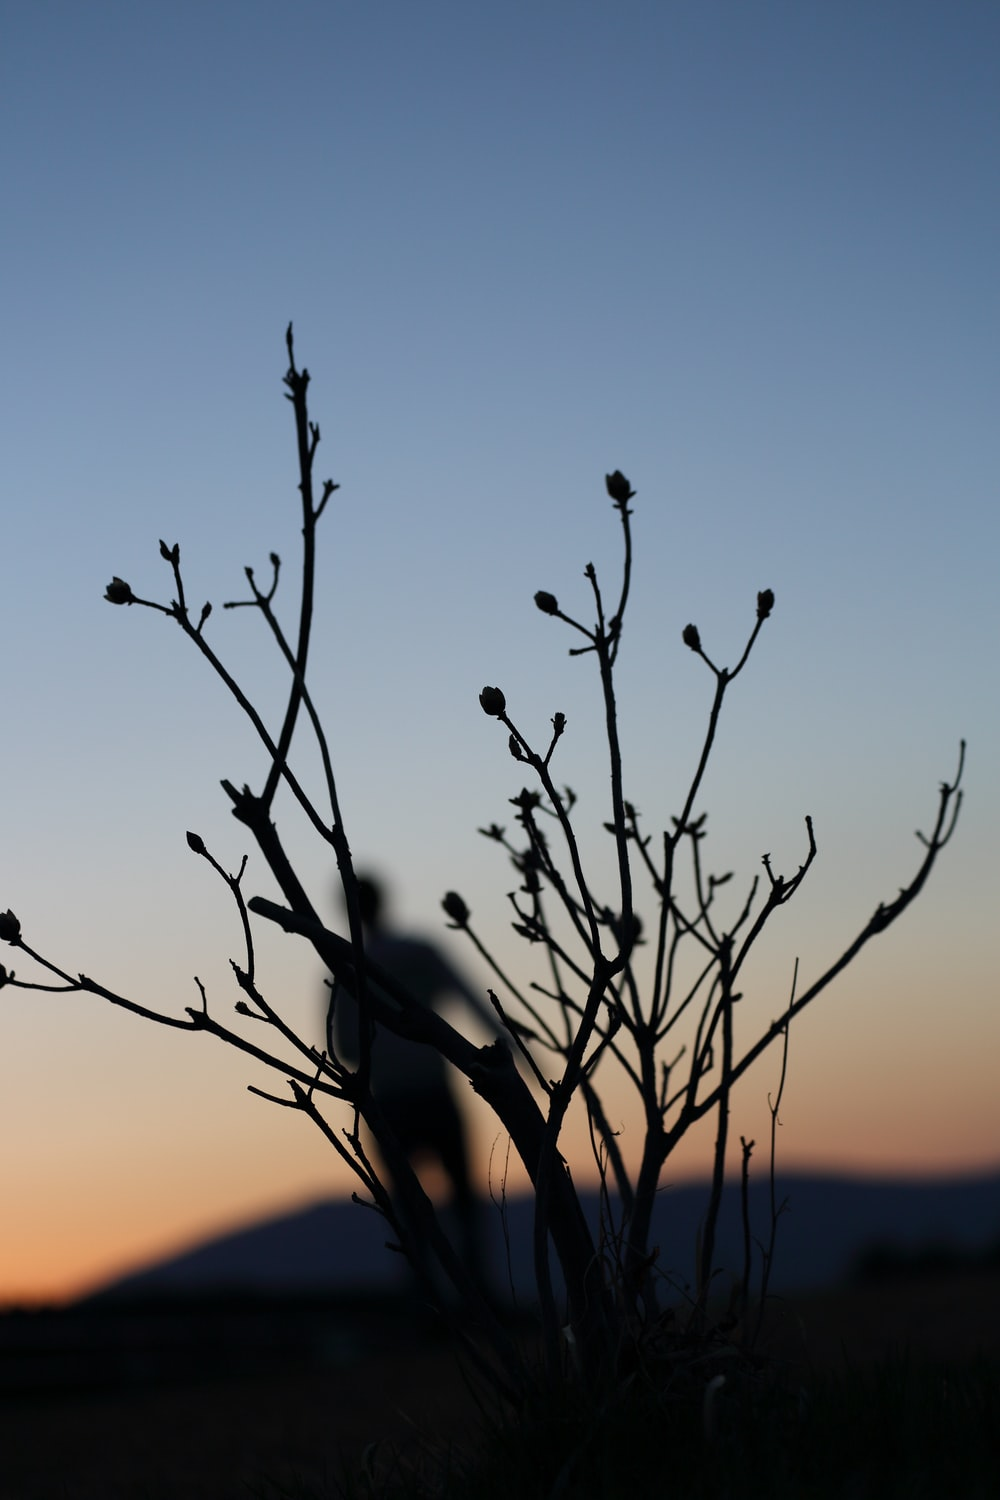 silhouette of person and plant